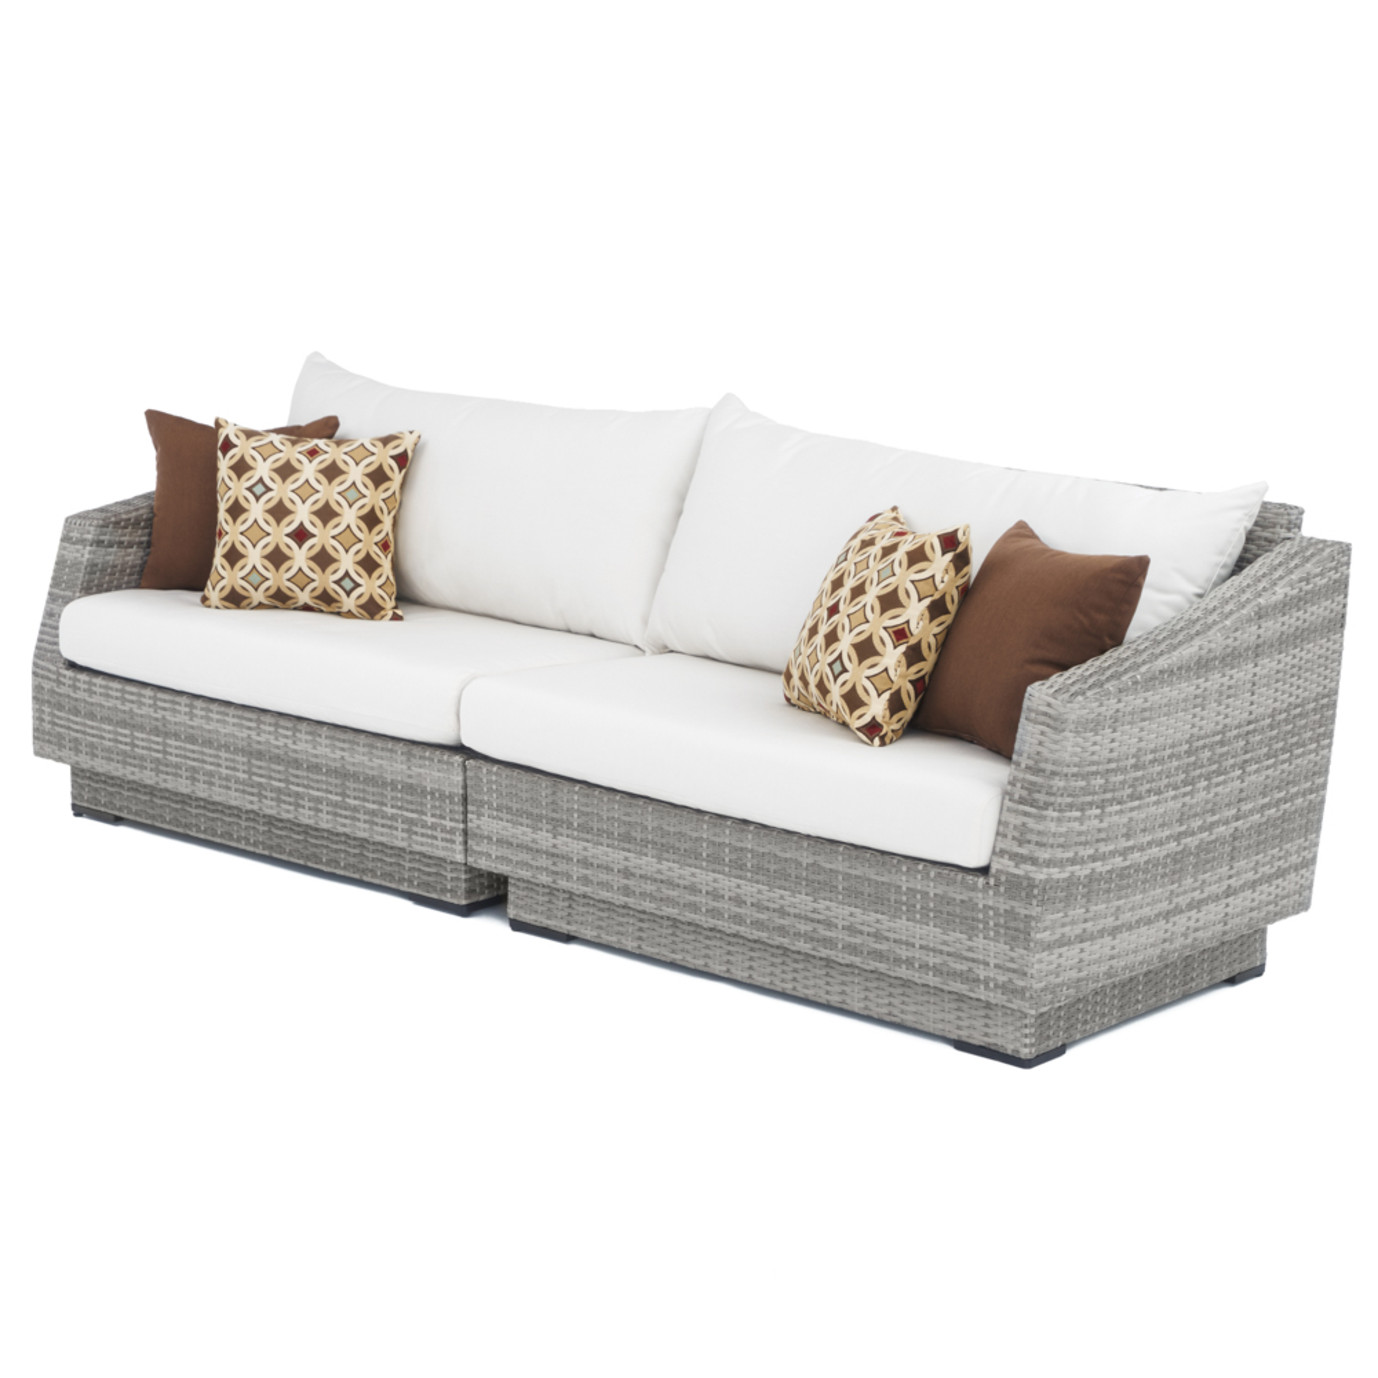 Cannes™ Sofa - Moroccan Cream